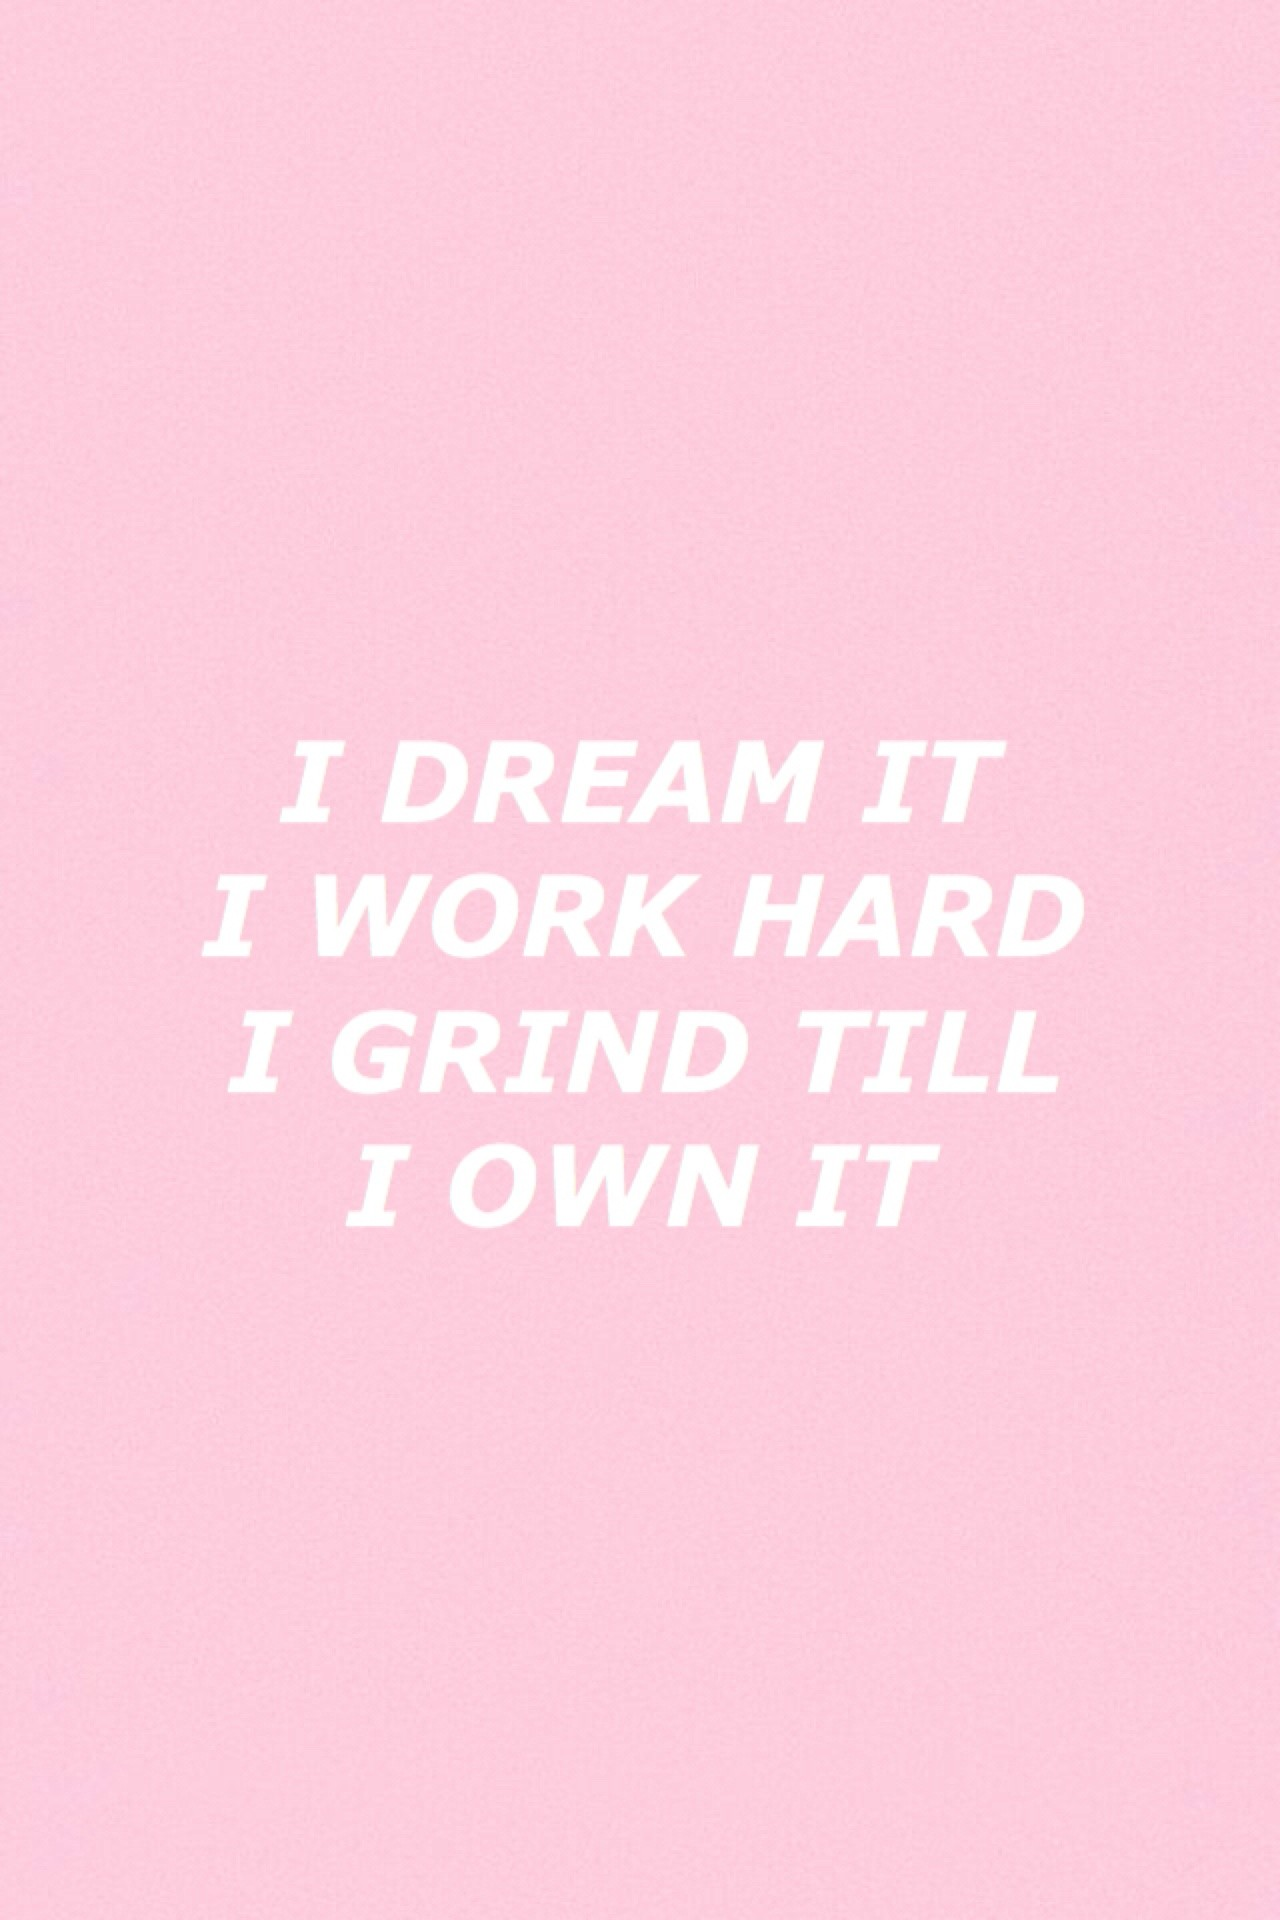 Inspirational Wallpaper For Iphone 84 Images